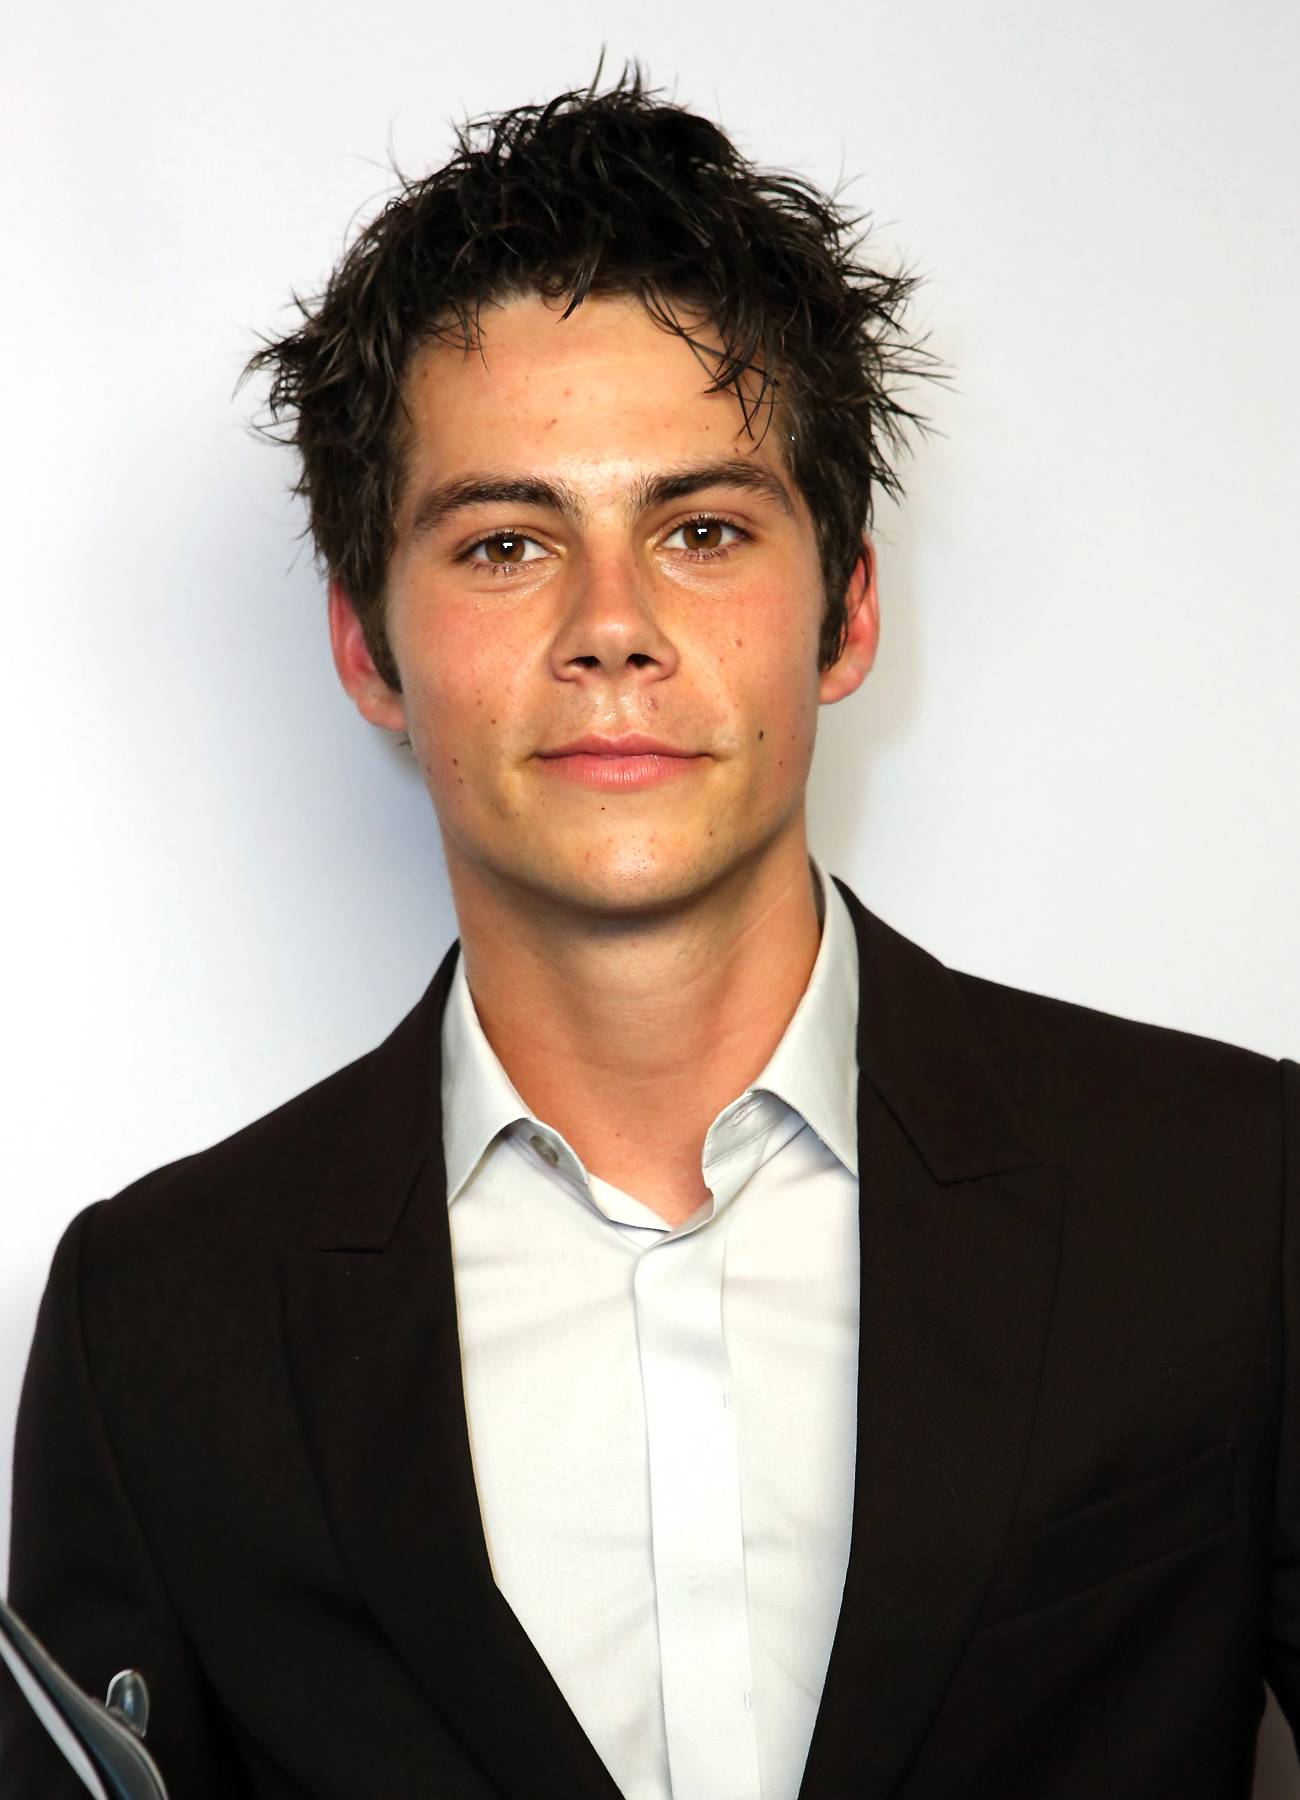 Dylan O'Brien - September 19, 2014 - New York native, Dylan O'Brien hit 106 to talk about how he got into character for new film The Maze Runner. Watch a clip now!  (Photo: Ari Perilstein/Getty Images for Variety)